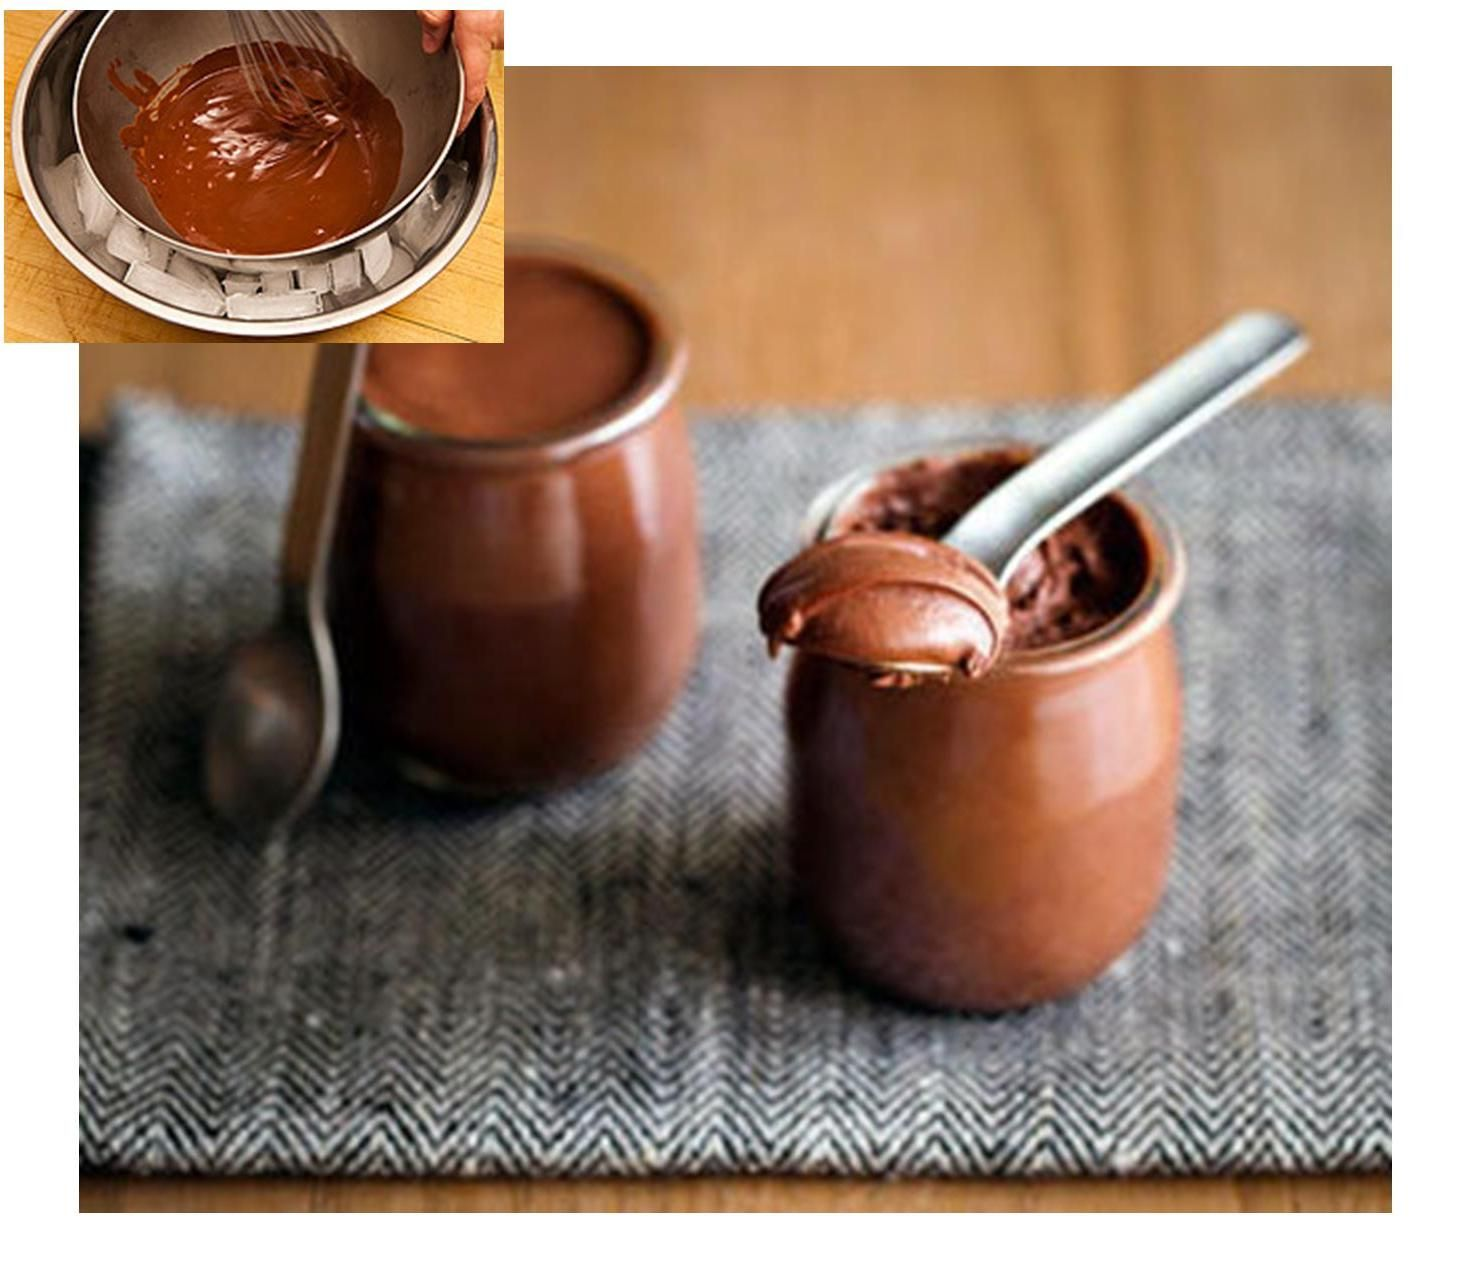 Chocolate Mousse - Just Chocolate and Water, Melt the chocolate and water together, cool it over an ice bath, and whisk till you have mousse - it works I SWEAR!! :)